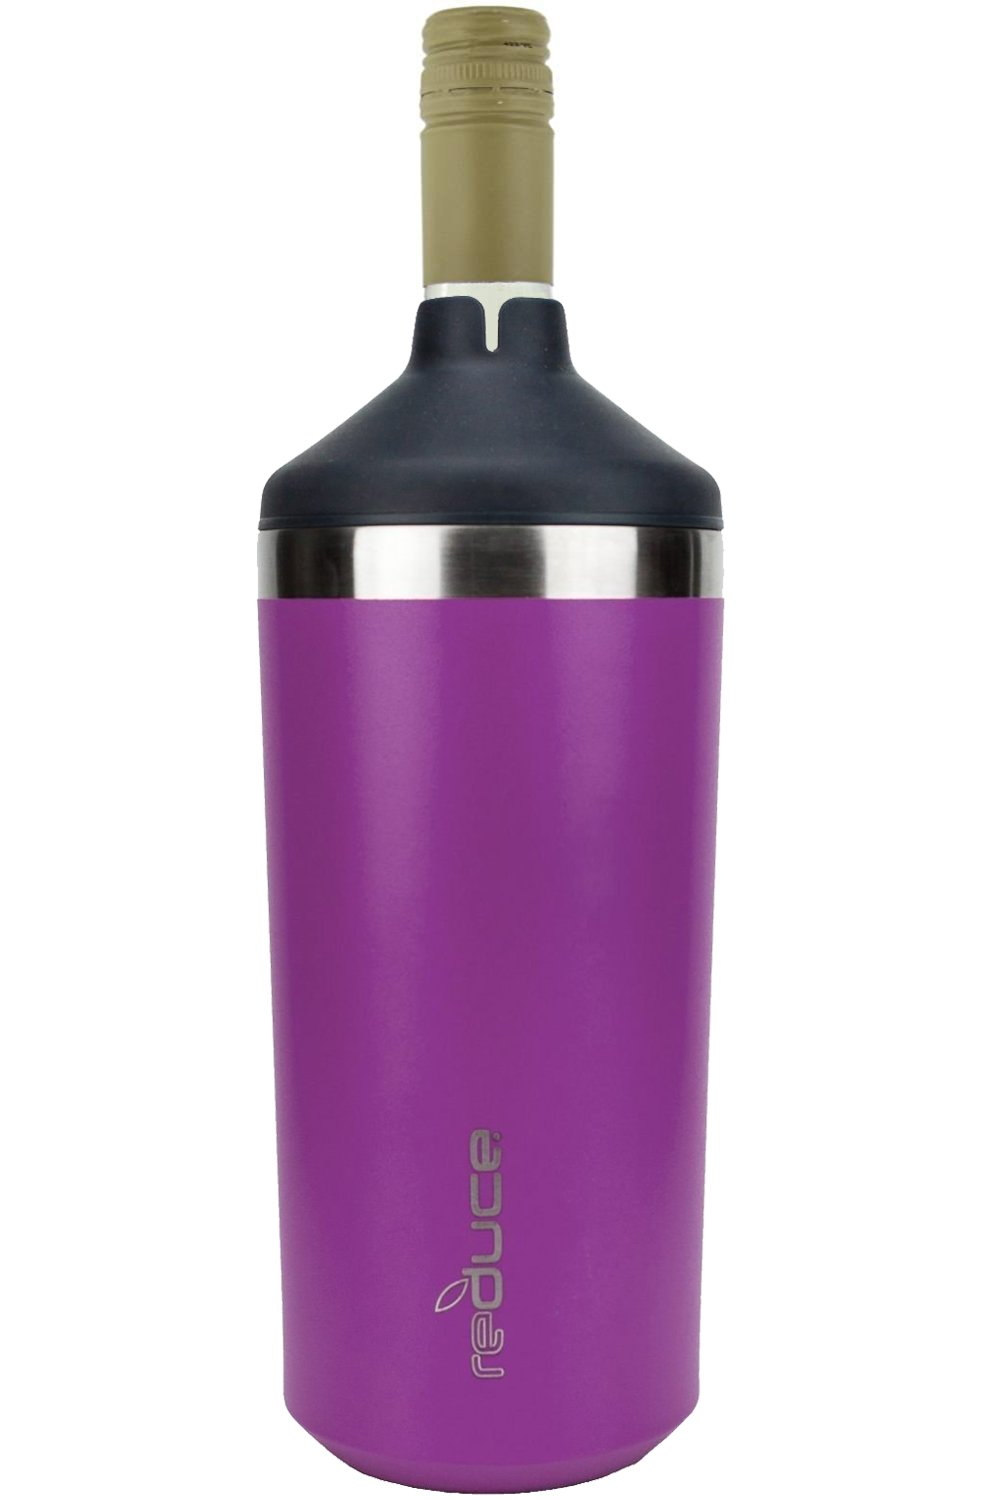 REDUCE Single Bottle Wine Chiller – Stainless Steel Wine Cooler Sleeve, Insulated Wine Chillers to Keep Wine at the Perfect Temperature, No Ice Required – An Ideal Gift, Fits Most Wine Bottles